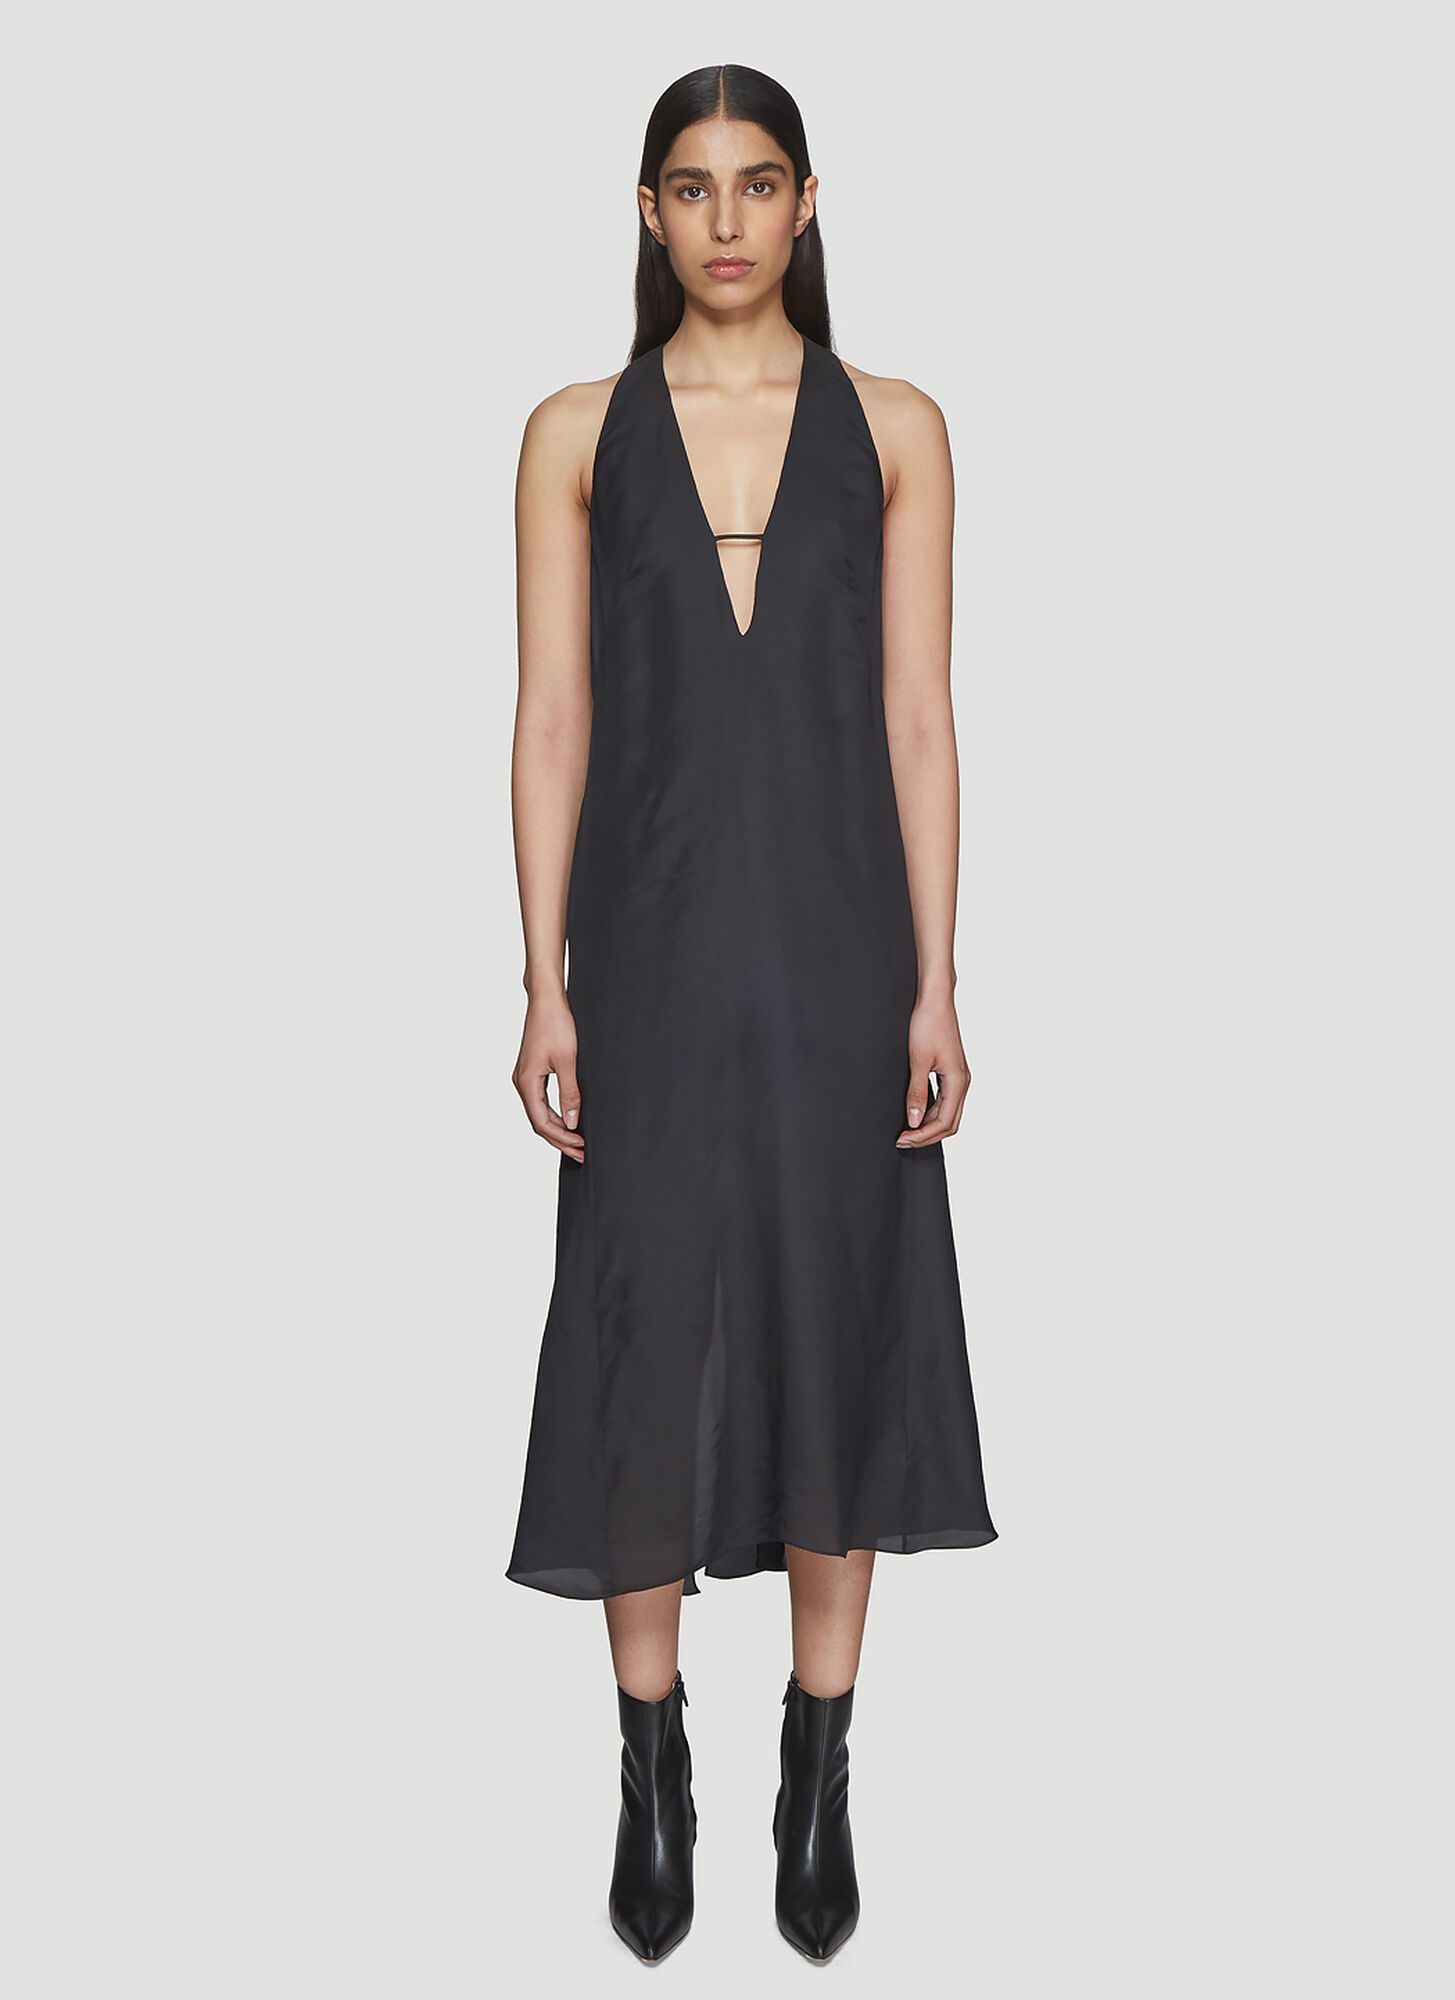 Olivier Theyskens Slip Dress in Black